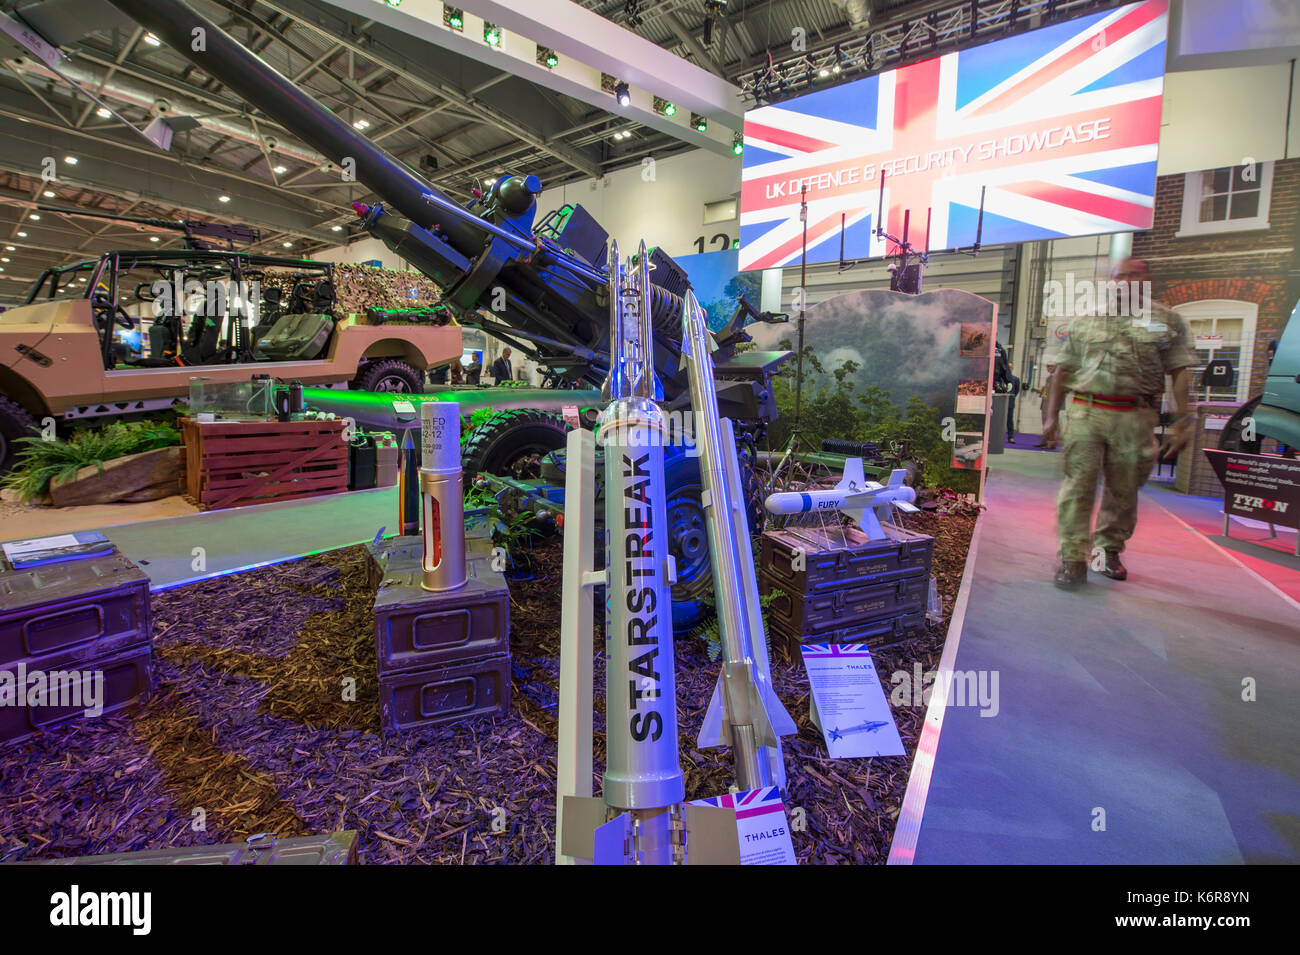 ExCel, London, UK. 13th Sep, 2017. Defence and Security Equipment International (DSEI), the worlds leading global defence and security event runs from 12-15 September 2017 showcasing the latest equipment and systems. UK Defence Security stand showcases Starstreak MANPADS, the fastest short-range surface-to-air missile in the world, manufactured by Thales Air Defence in Belfast (formerly Shorts Missile Systems). Credit: Malcolm Park/Alamy Live News. - Stock Image